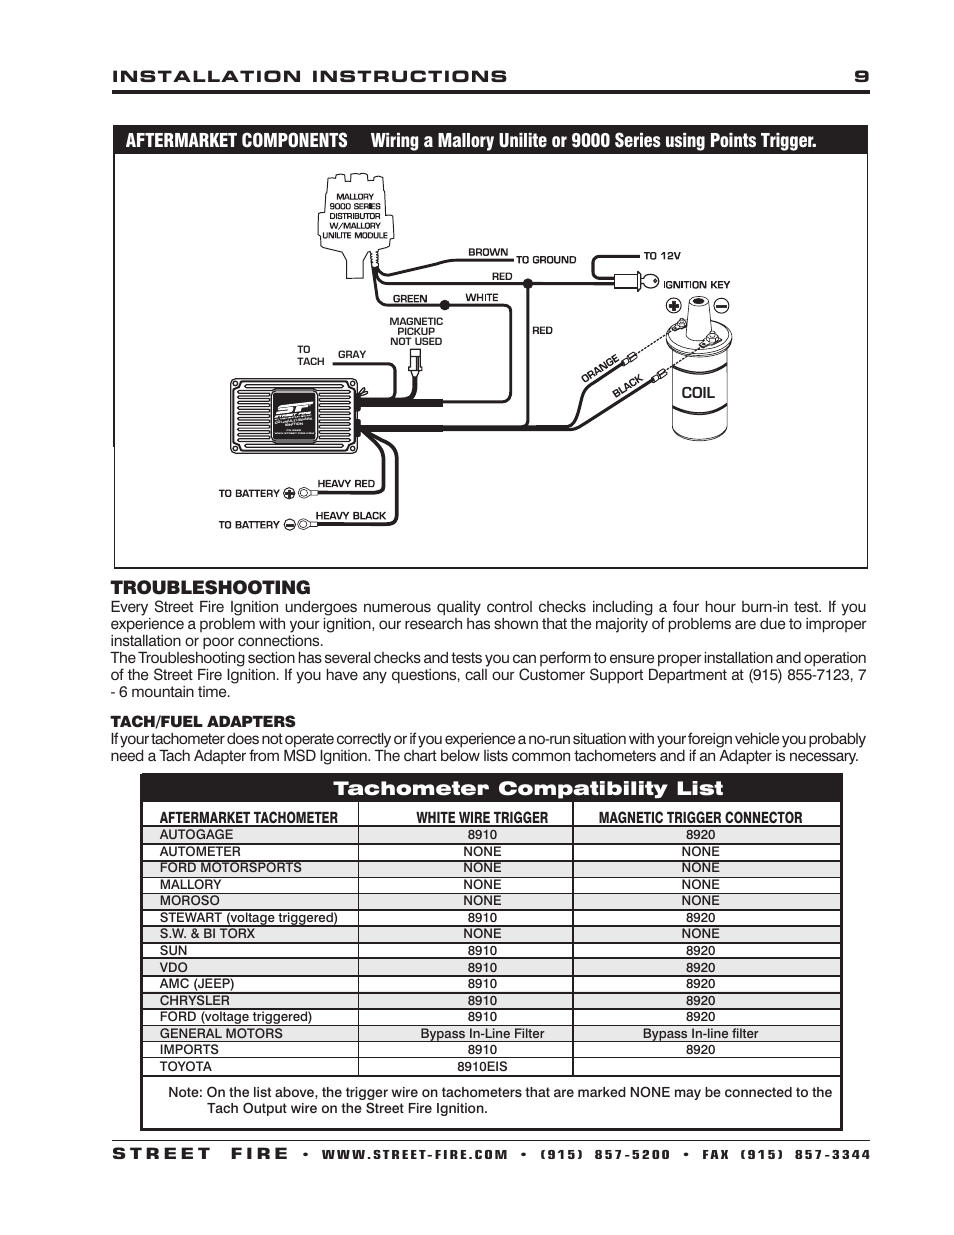 msd 5520 street fire ignition control installation page9?resize=665%2C861 mallory high fire ignition wiring diagrams mallory dist wiring mallory unilite wiring diagram at gsmx.co